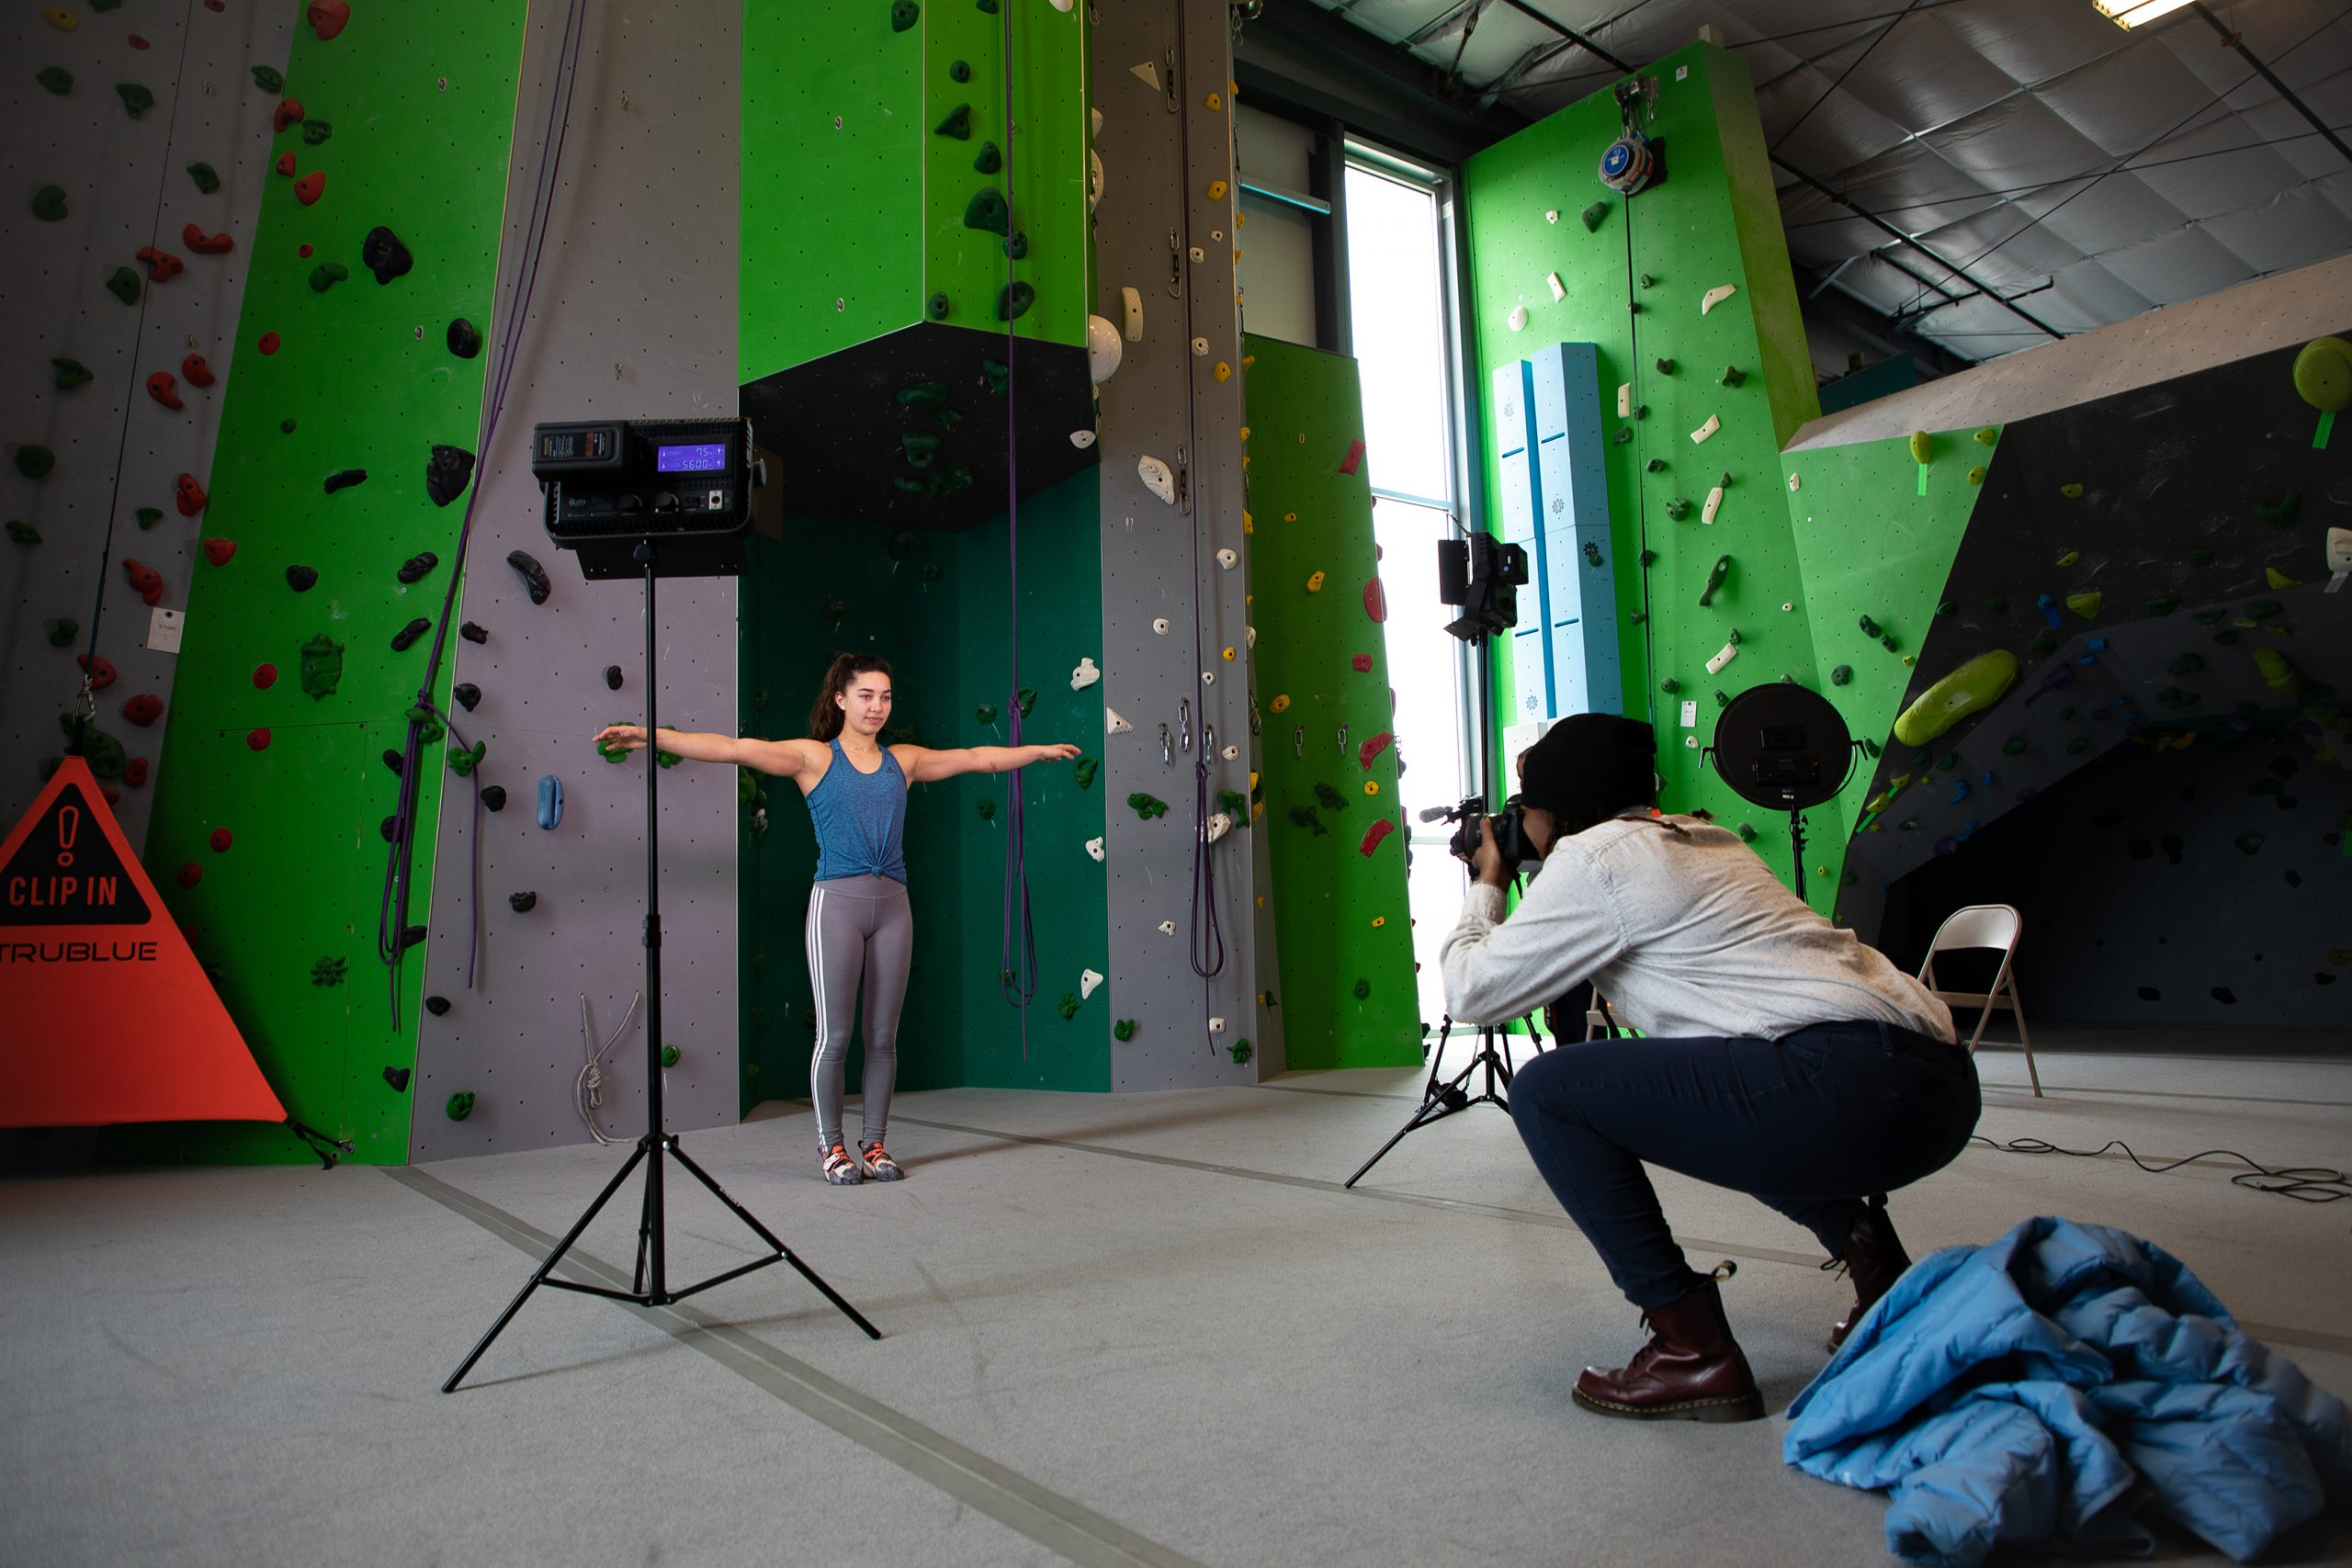 A Carolina student takes a photo of a climber in front of a rock wall.